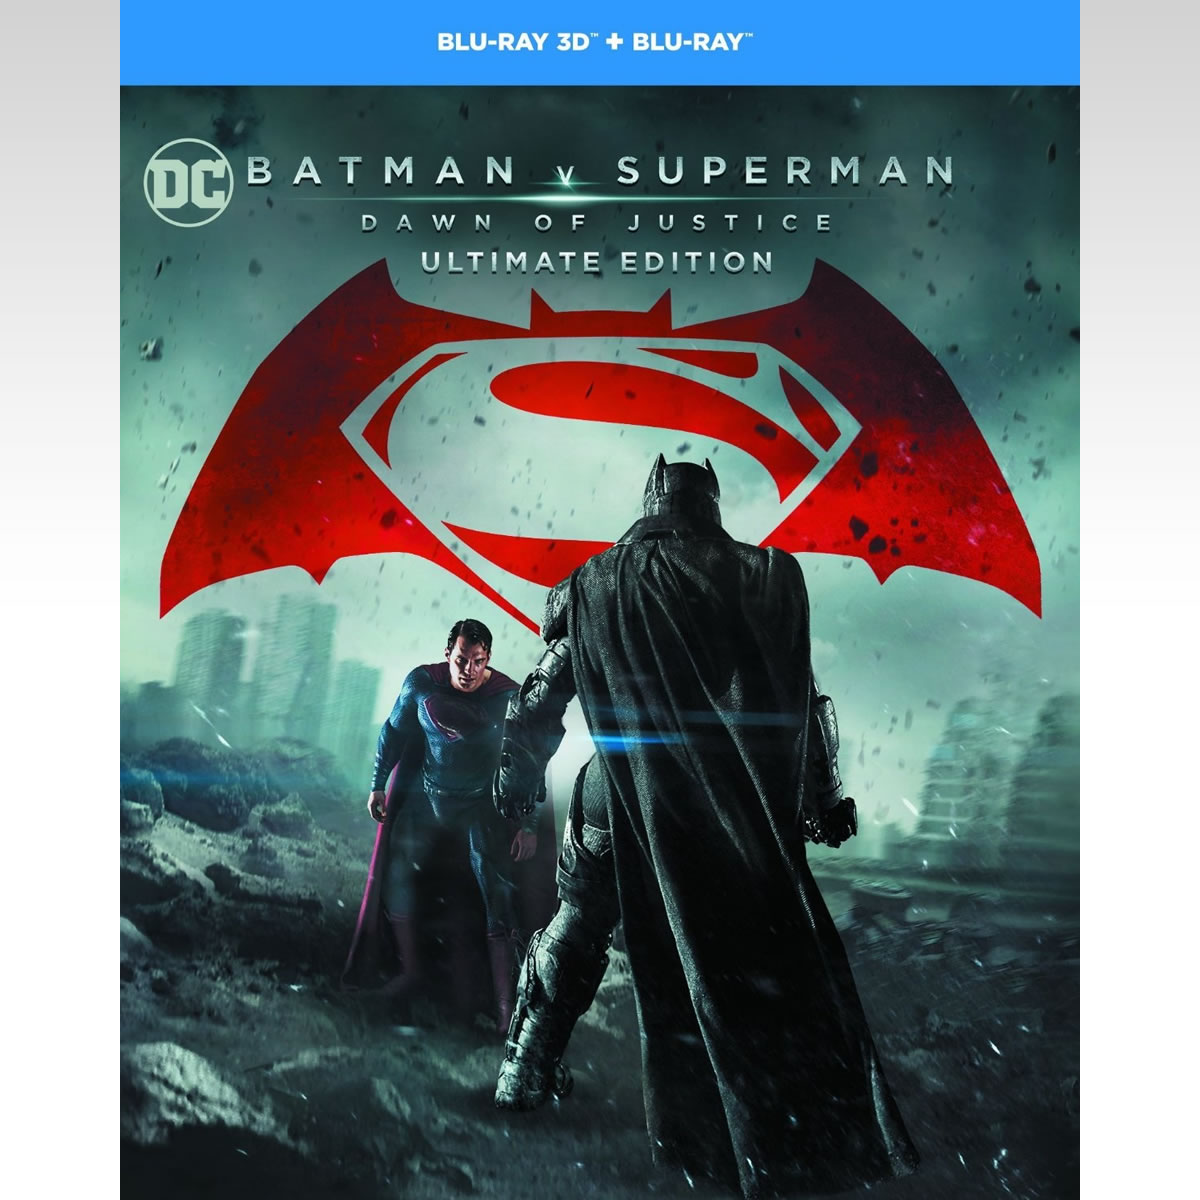 BATMAN V SUPERMAN: DAWN OF JUSTICE 3D Extended Unrated Cut ULTIMATE EDITION - BATMAN V SUPERMAN: Η ΑΥΓΗ ΤΗΣ ΔΙΚΑΙΟΣΥΝΗΣ 3D Extended Unrated Cut ULTIMATE EDITION (BLU-RAY 3D + BLU-RAY)